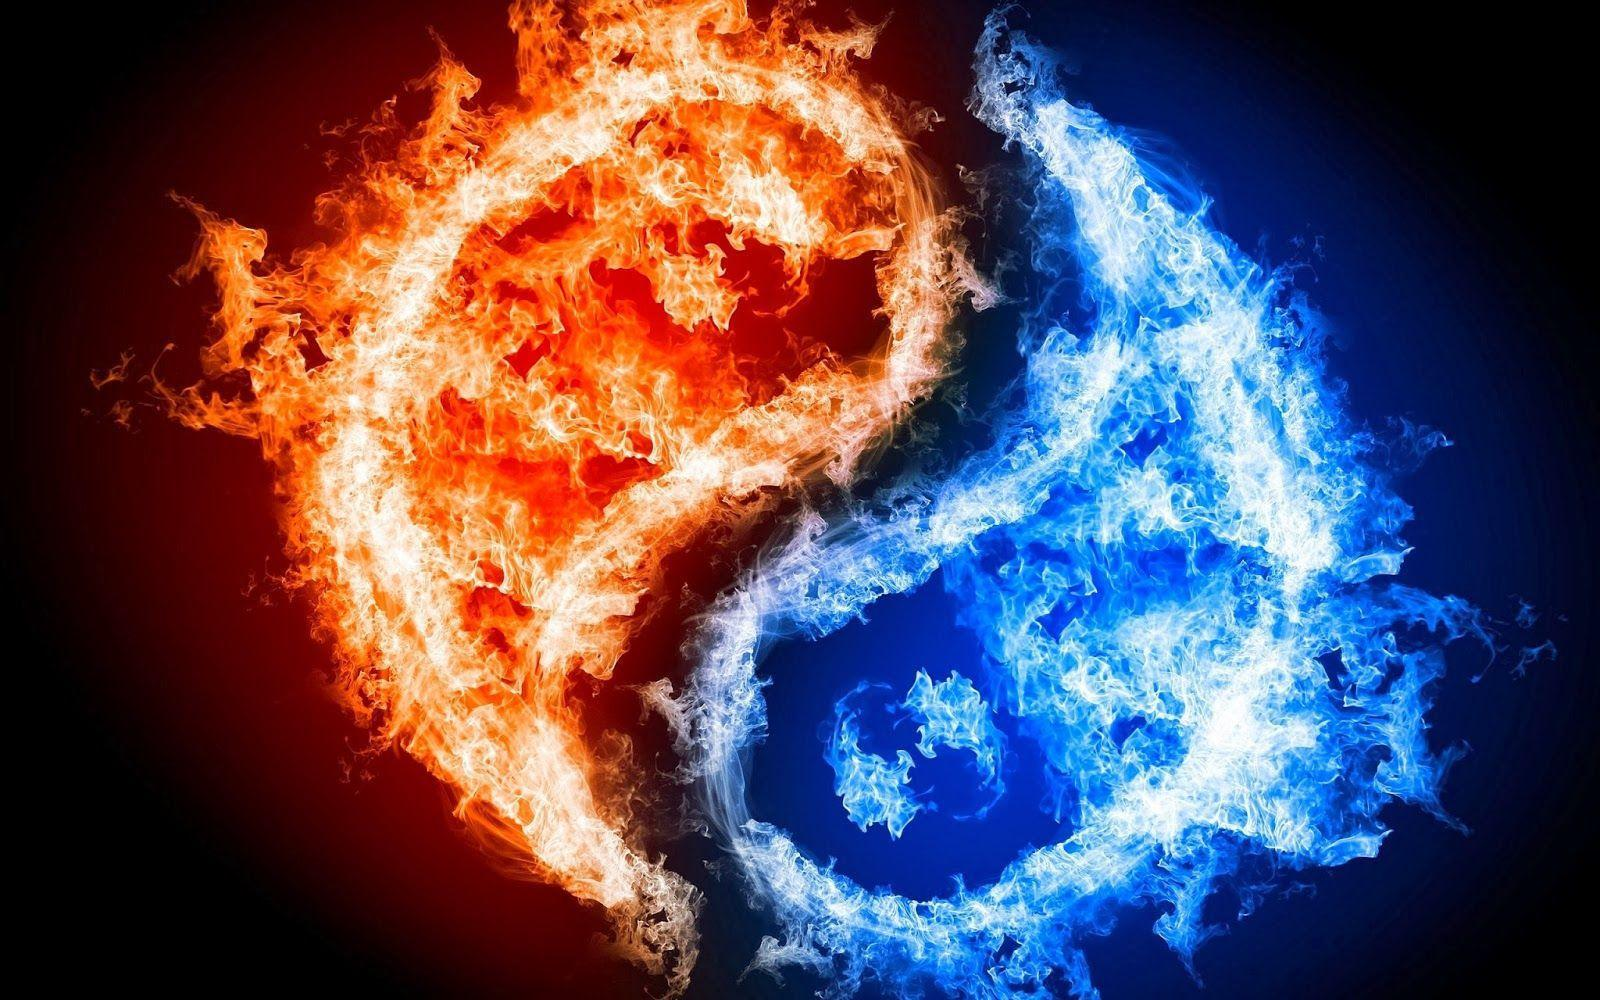 Wallpapers For > Awesome Fire Wallpapers